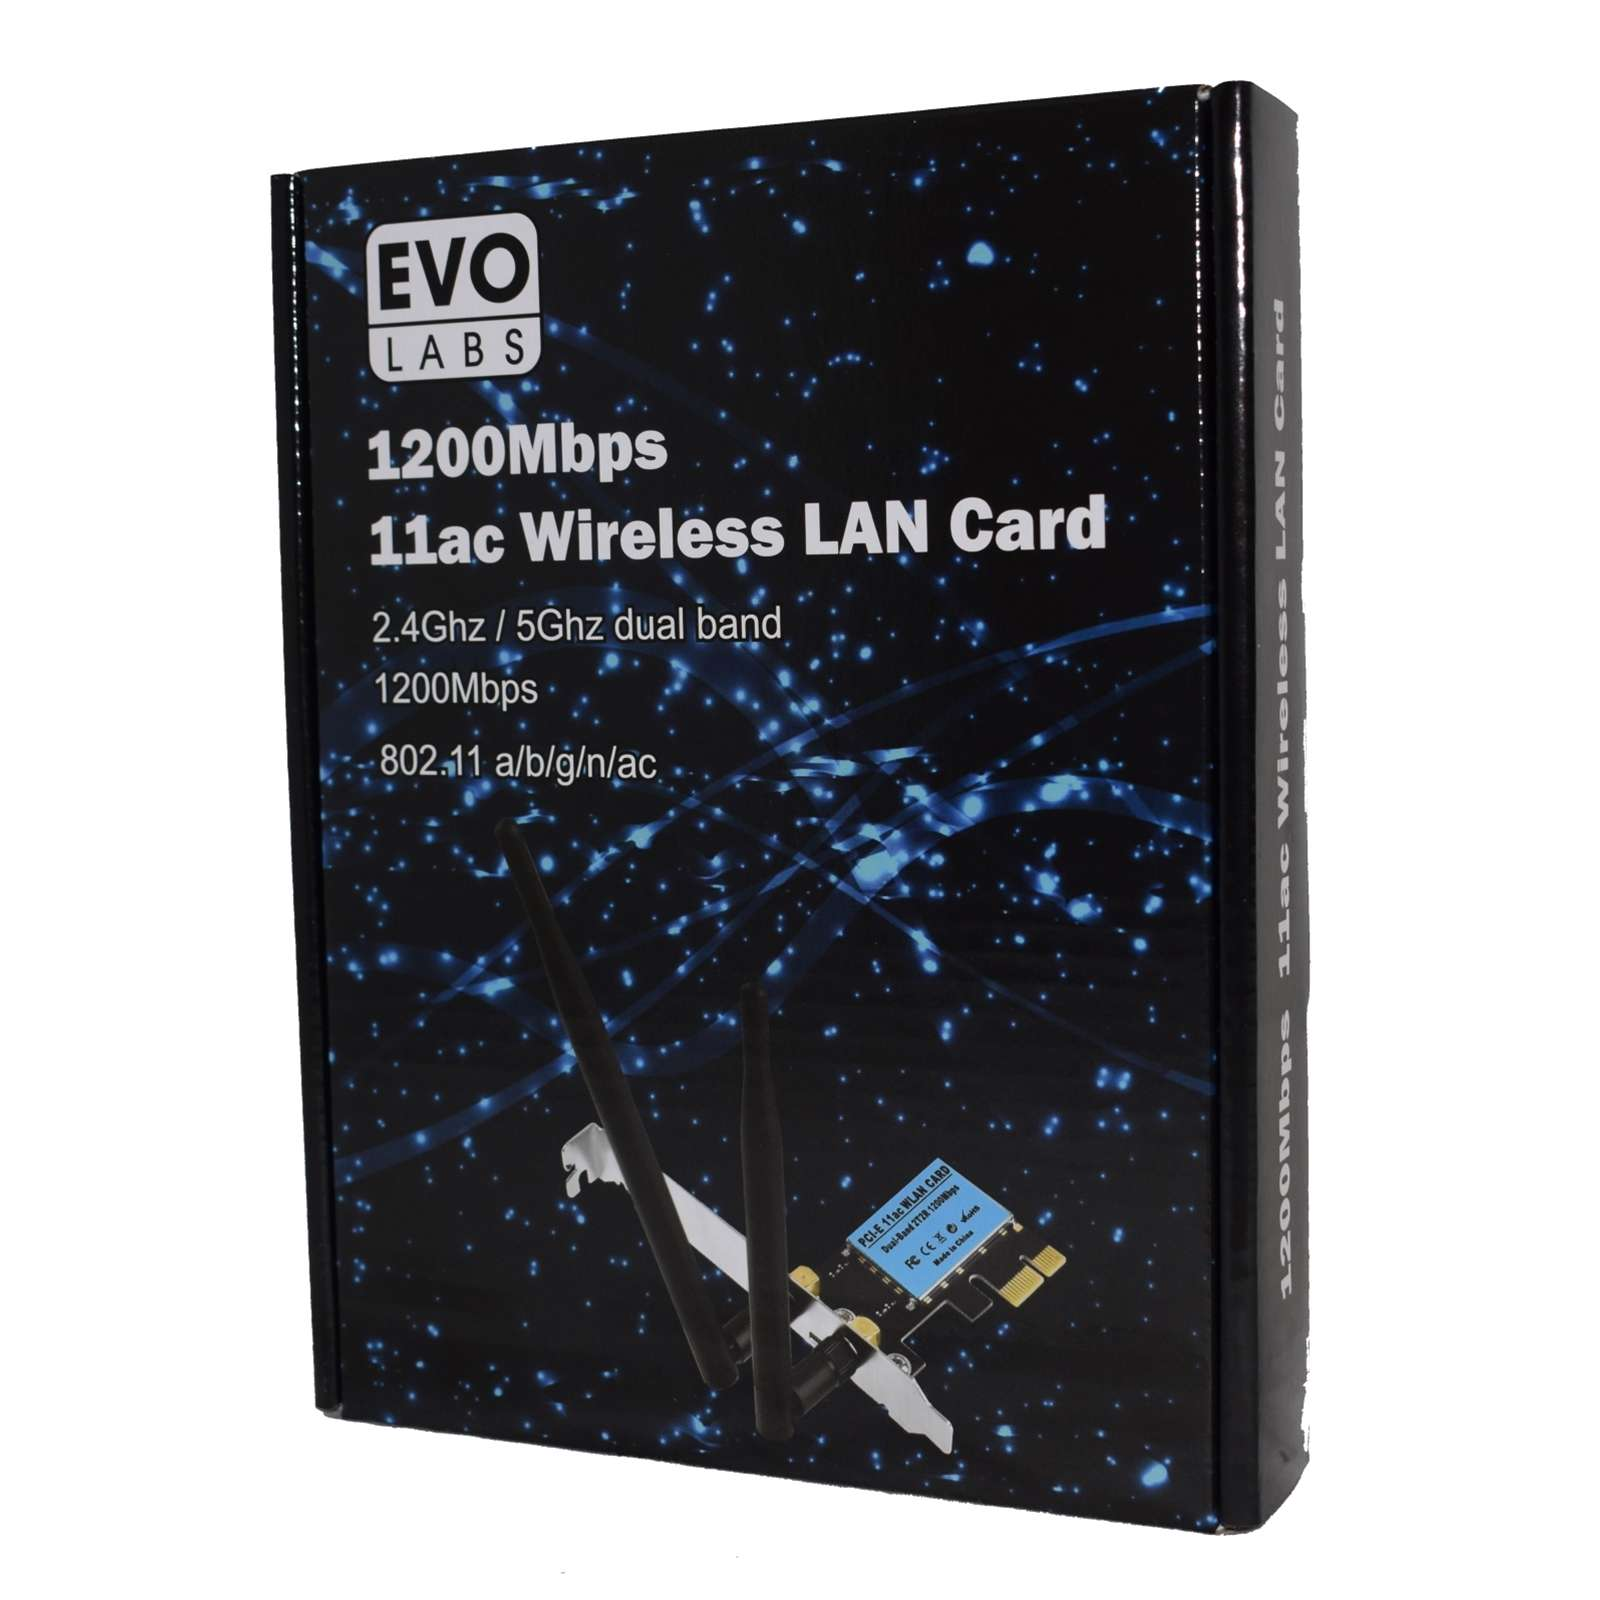 Evo Labs PCI-Express Full Height AC1200 Dual Band WiFi Card with Detachable Antennas